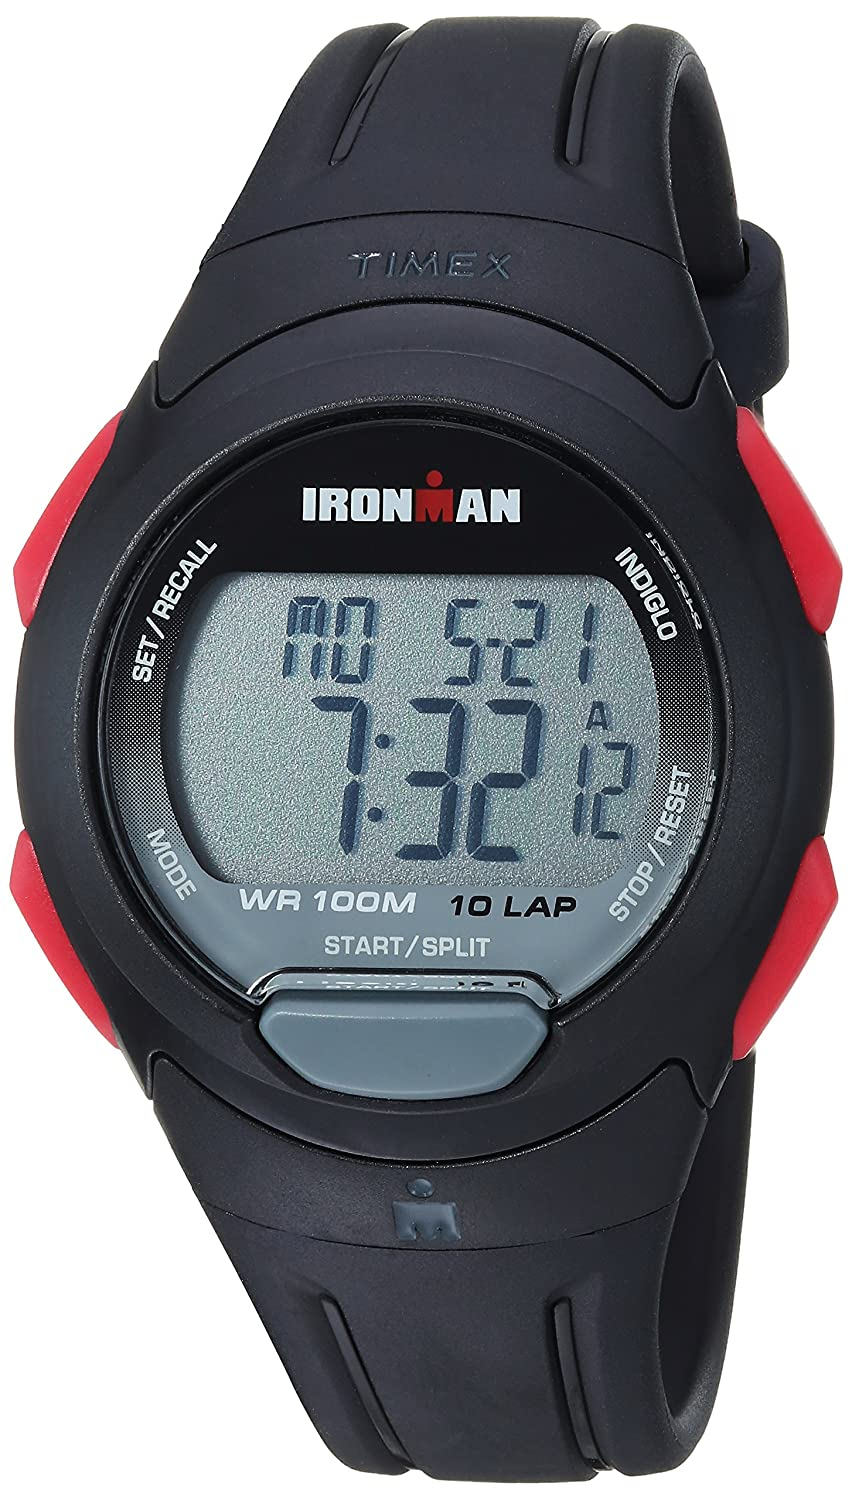 489216487e7e Amazon.com  Timex Men s TW5M16400 Ironman Essential 10 Black Red Resin  Strap Watch  Timex  Watches